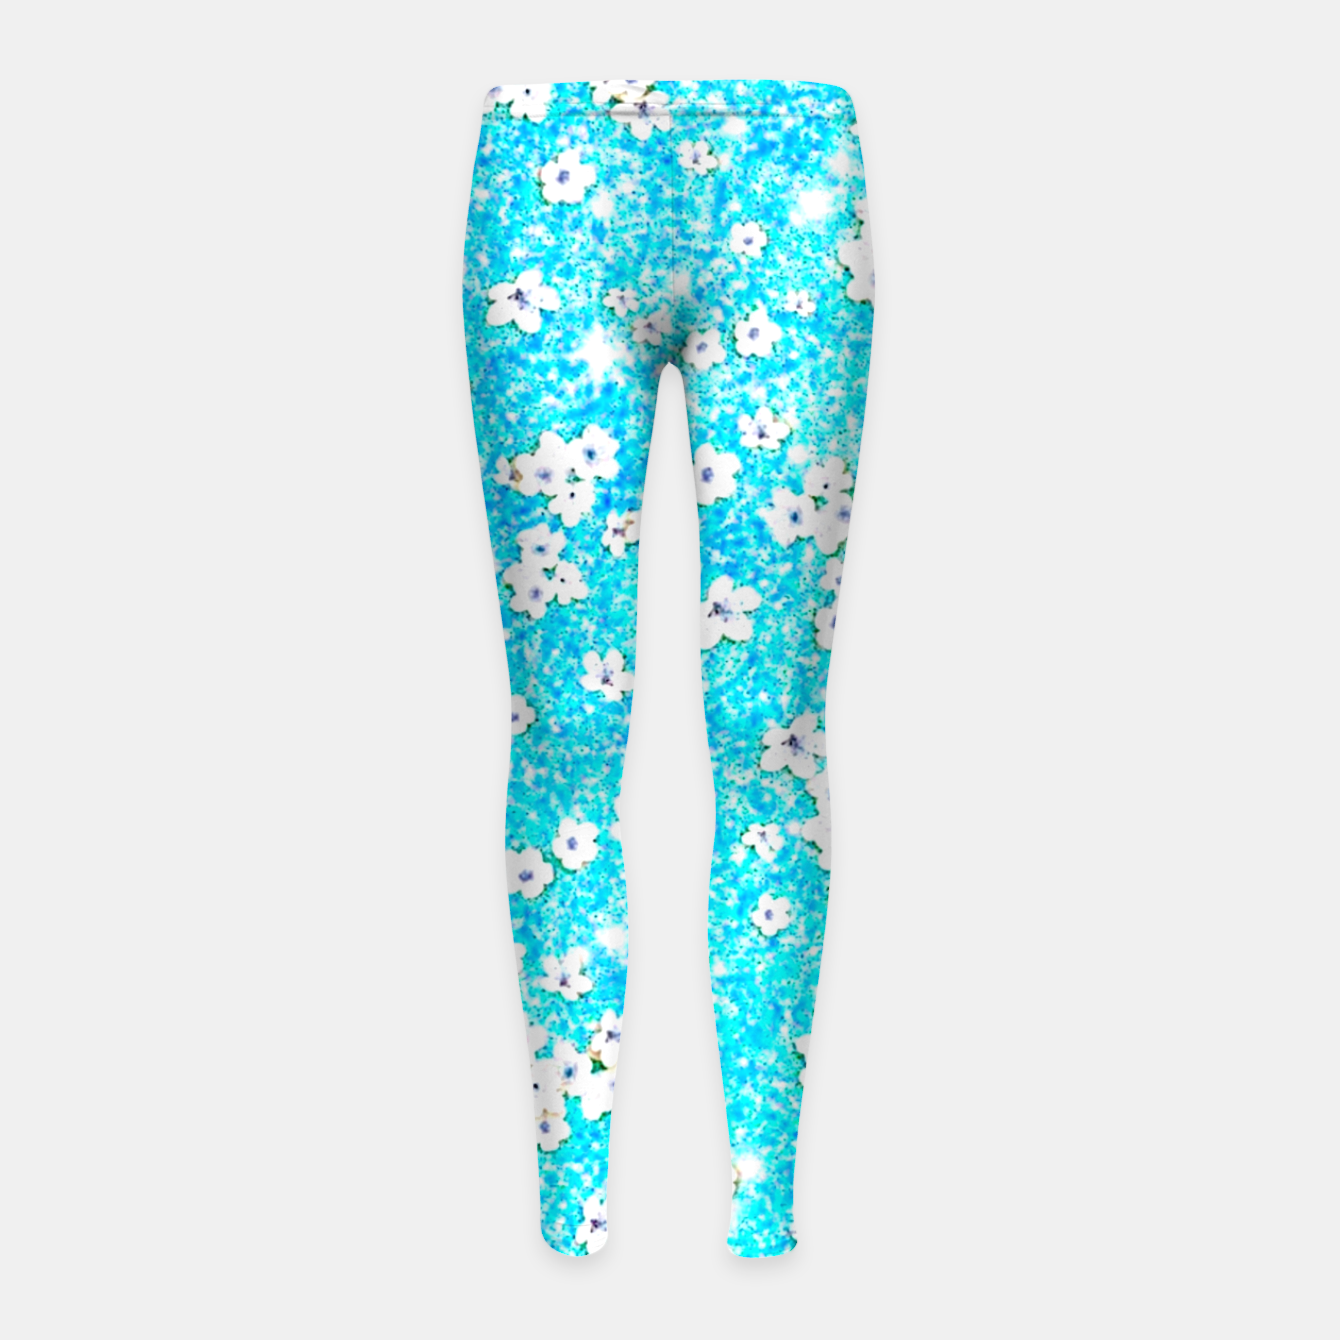 Zdjęcie turquoise blue white floral pattern Girl's leggings - Live Heroes